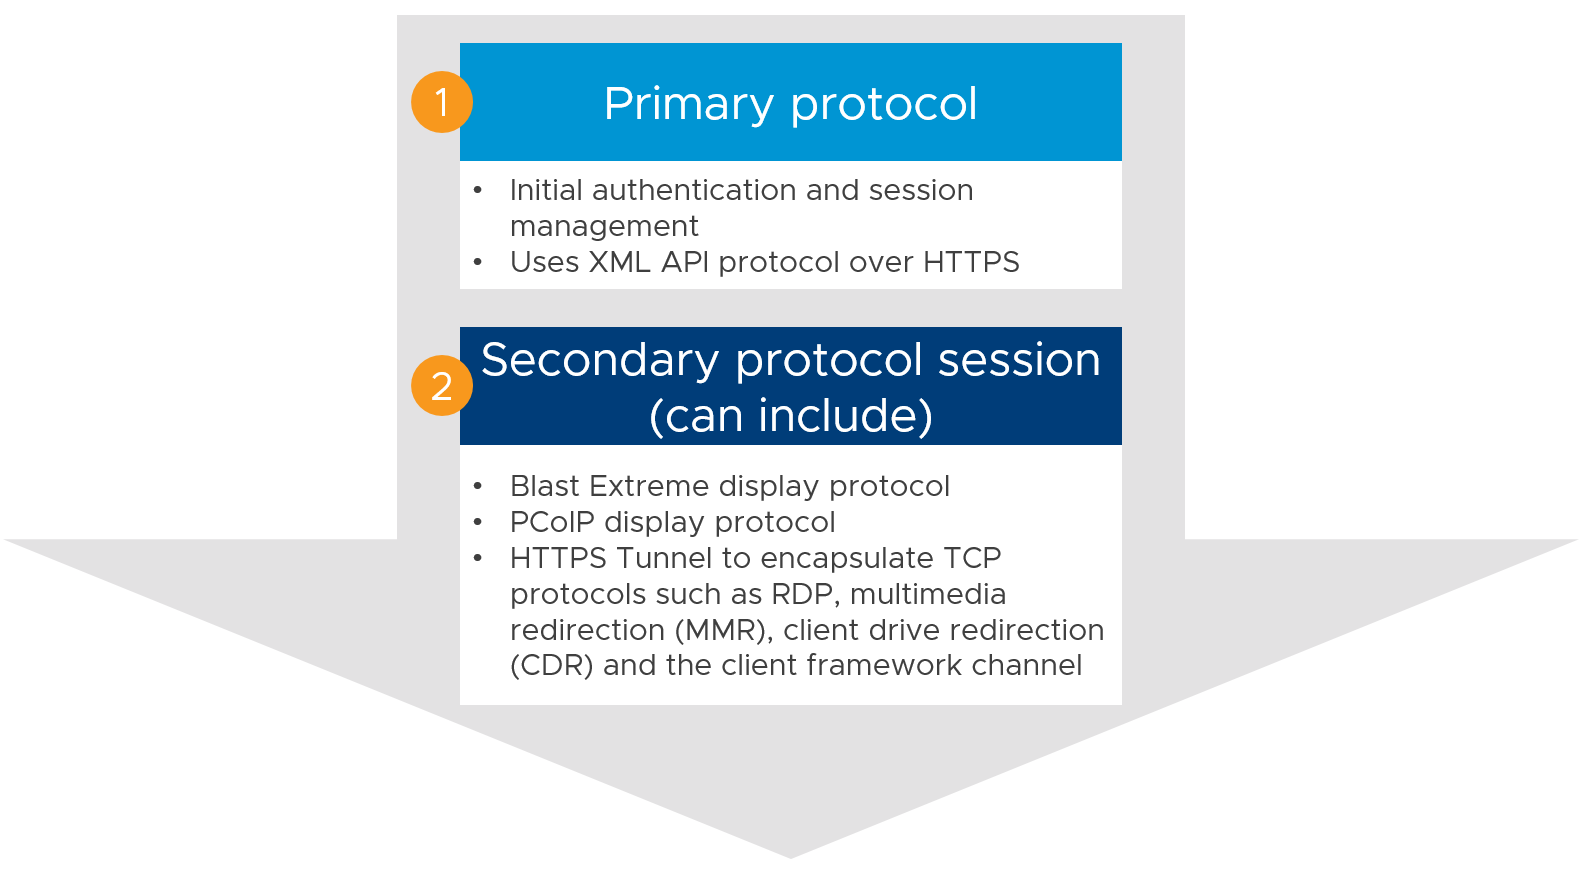 primary and secondary protocols